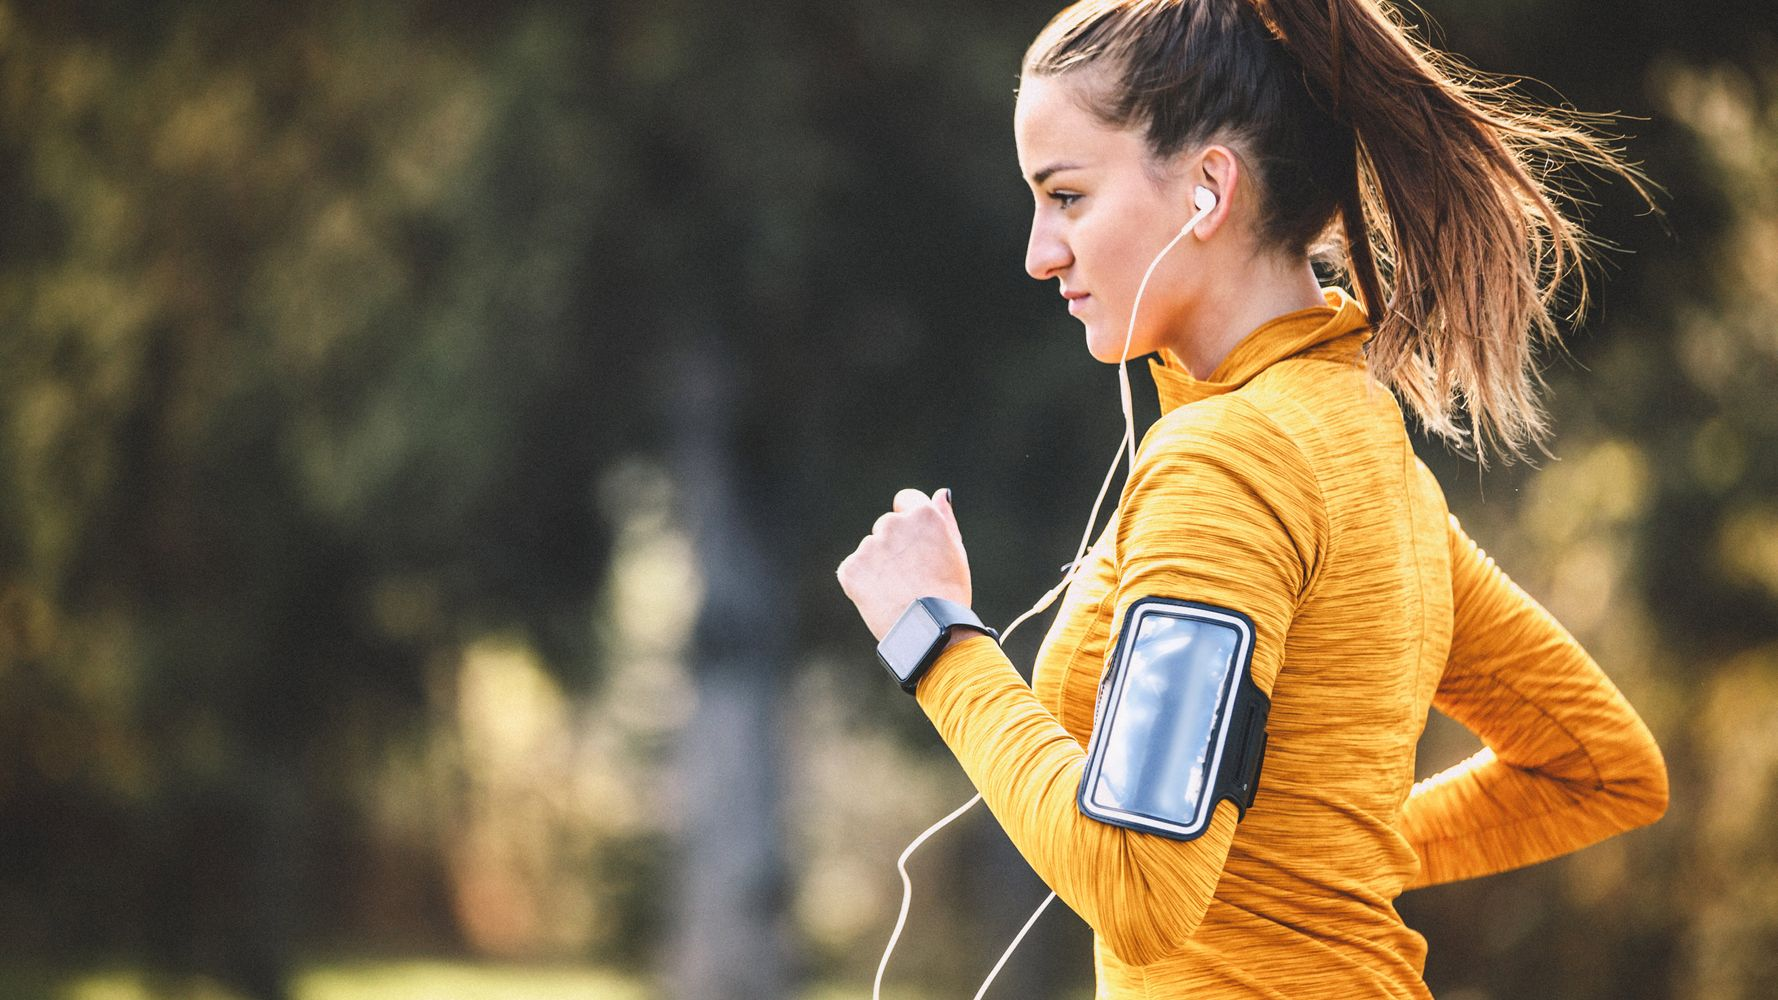 The 8 Free Health Tracking Apps That Everyone Should Try